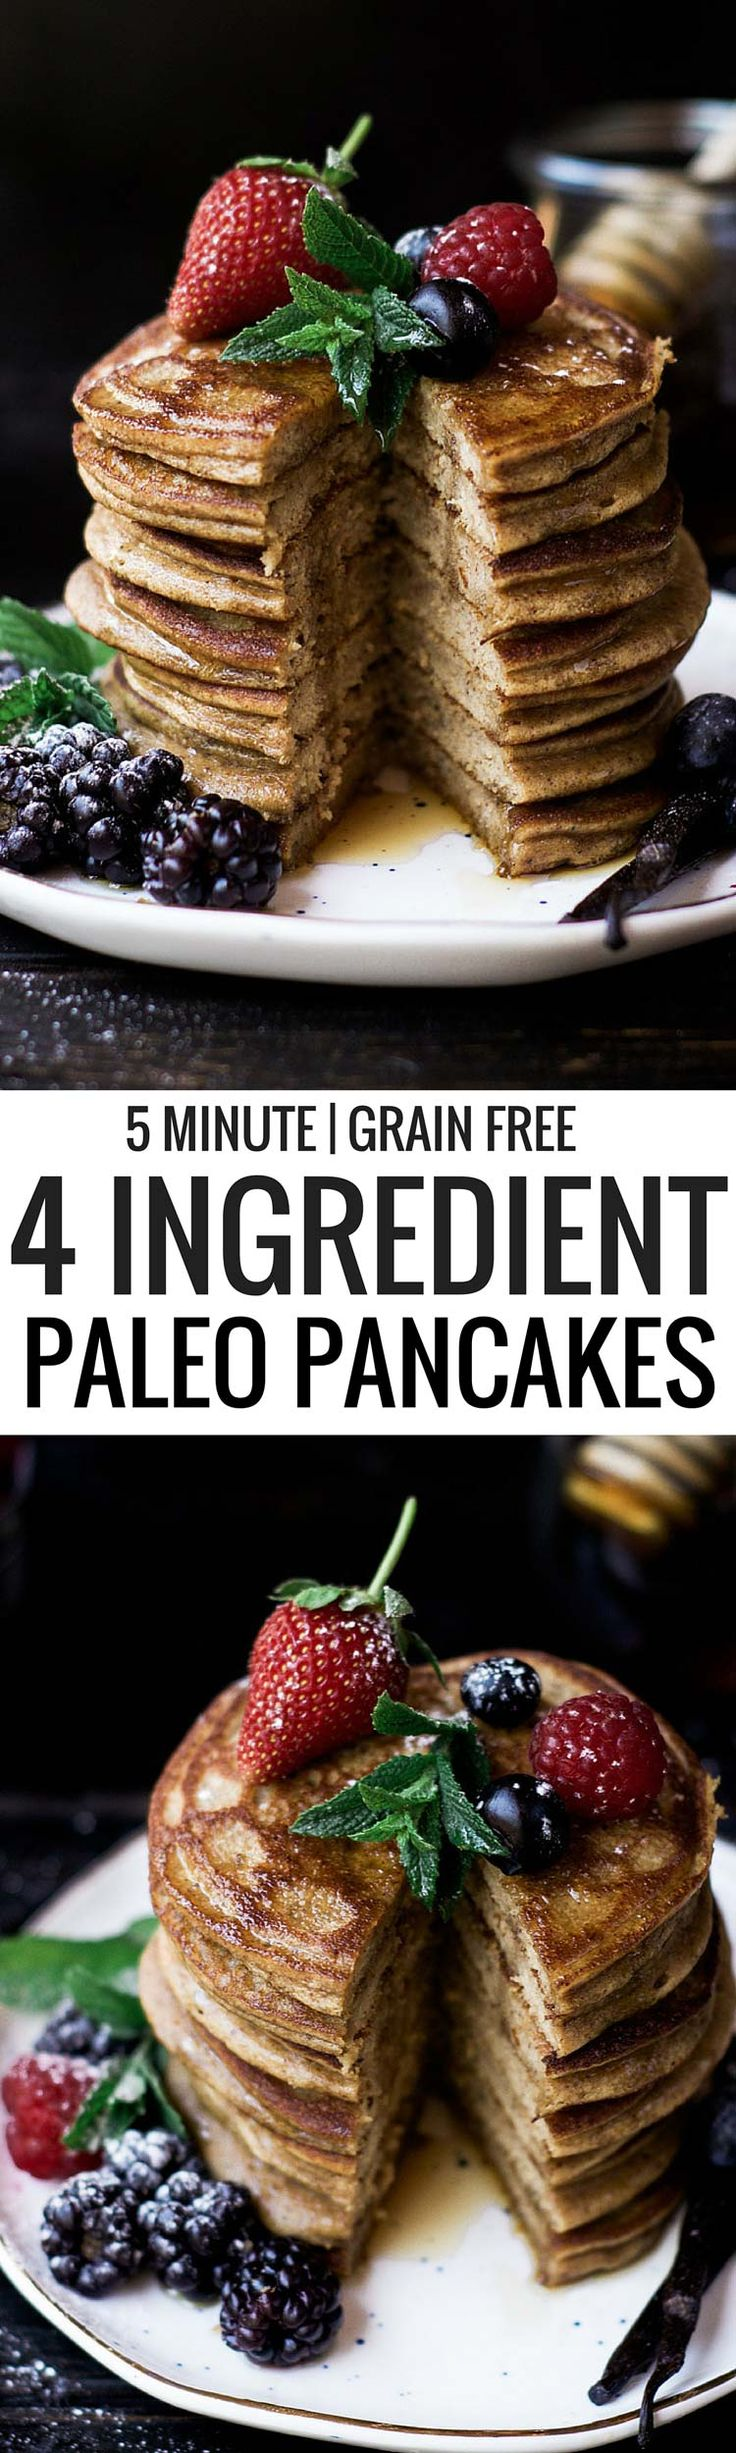 Paleo pancakes made with only four ingredients! An easy to make breakfast make in 5 minutes! Gluten free, Grain free, and Paleo. These soft and flavorful grain free pancakes are so addictingly delicious and easy to make. The rich and tasty flavors from these pancakes are perfect paired with fresh juicy berries and a drizzle of maple syrup.